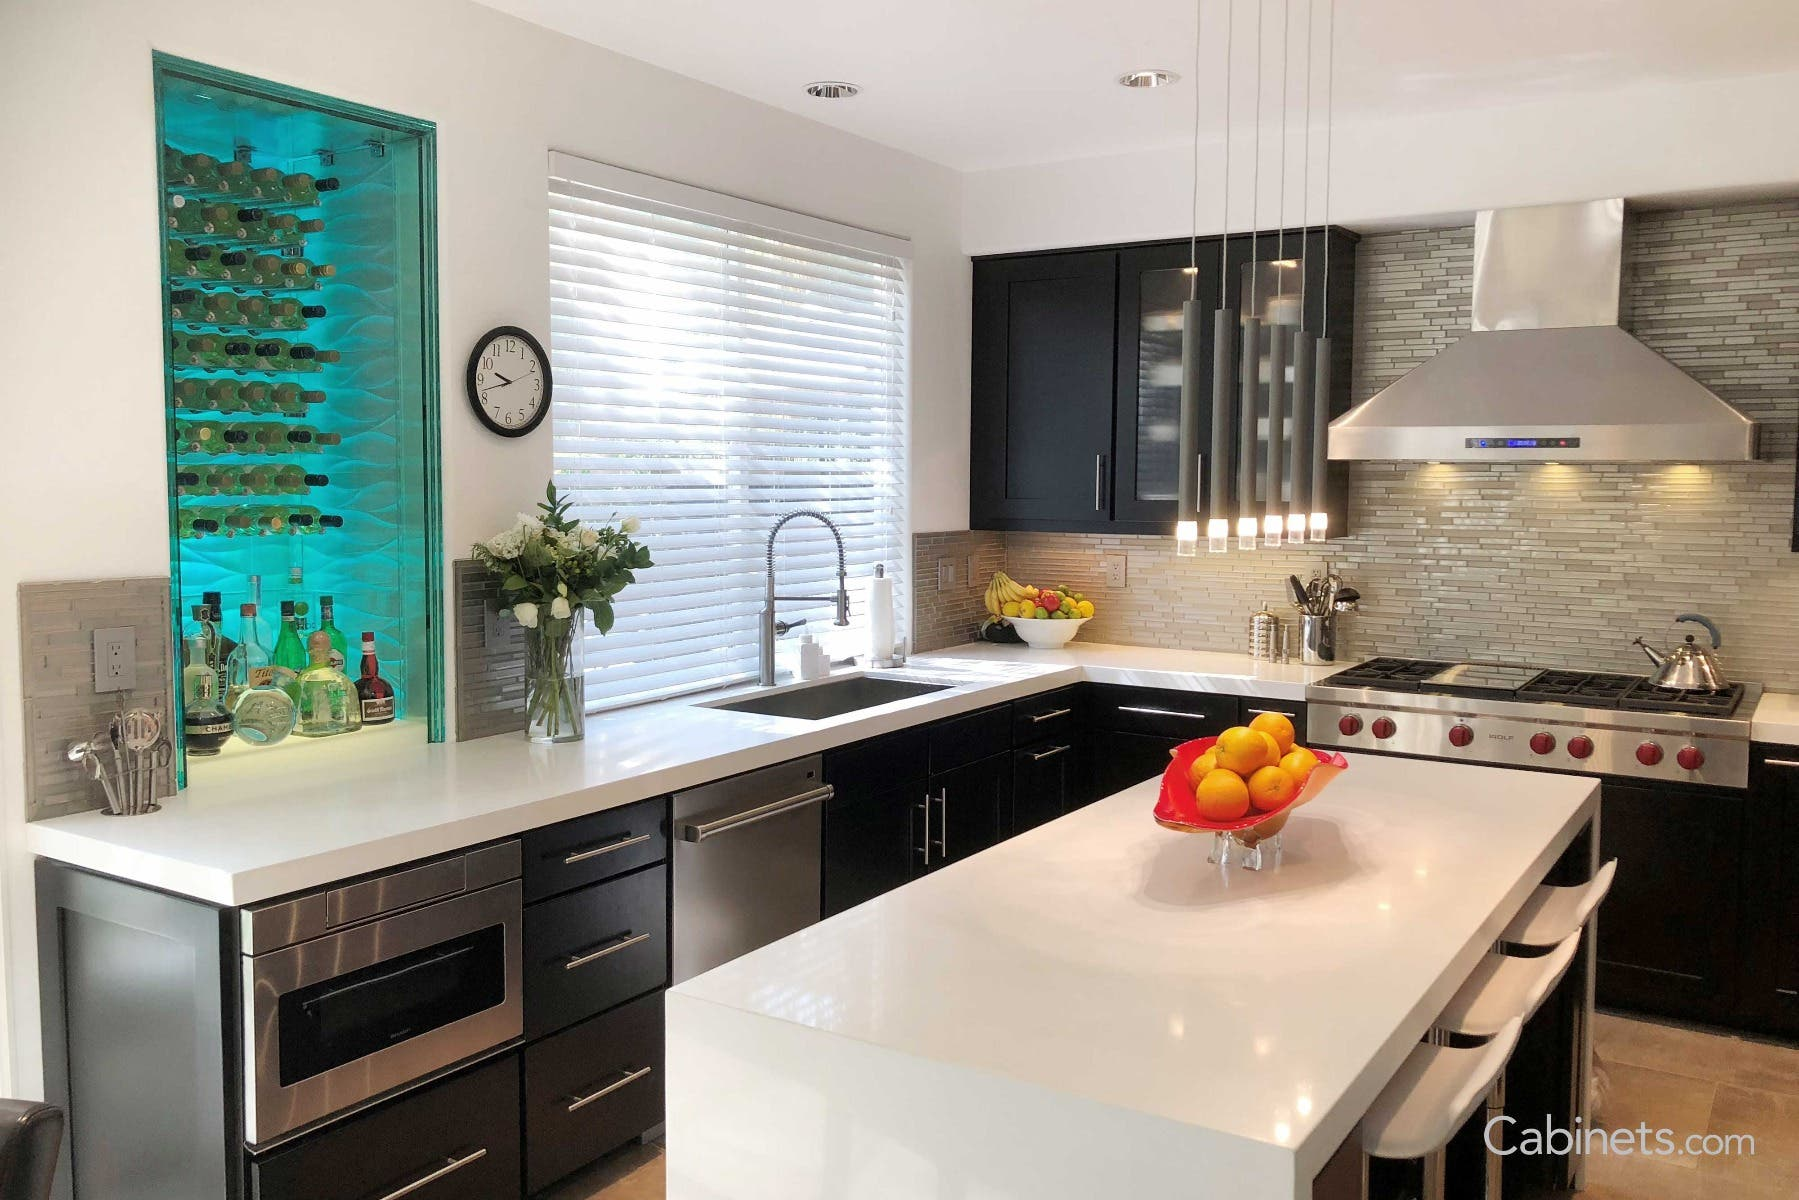 How To Decorate A Modern Style Kitchen Cabinets Com